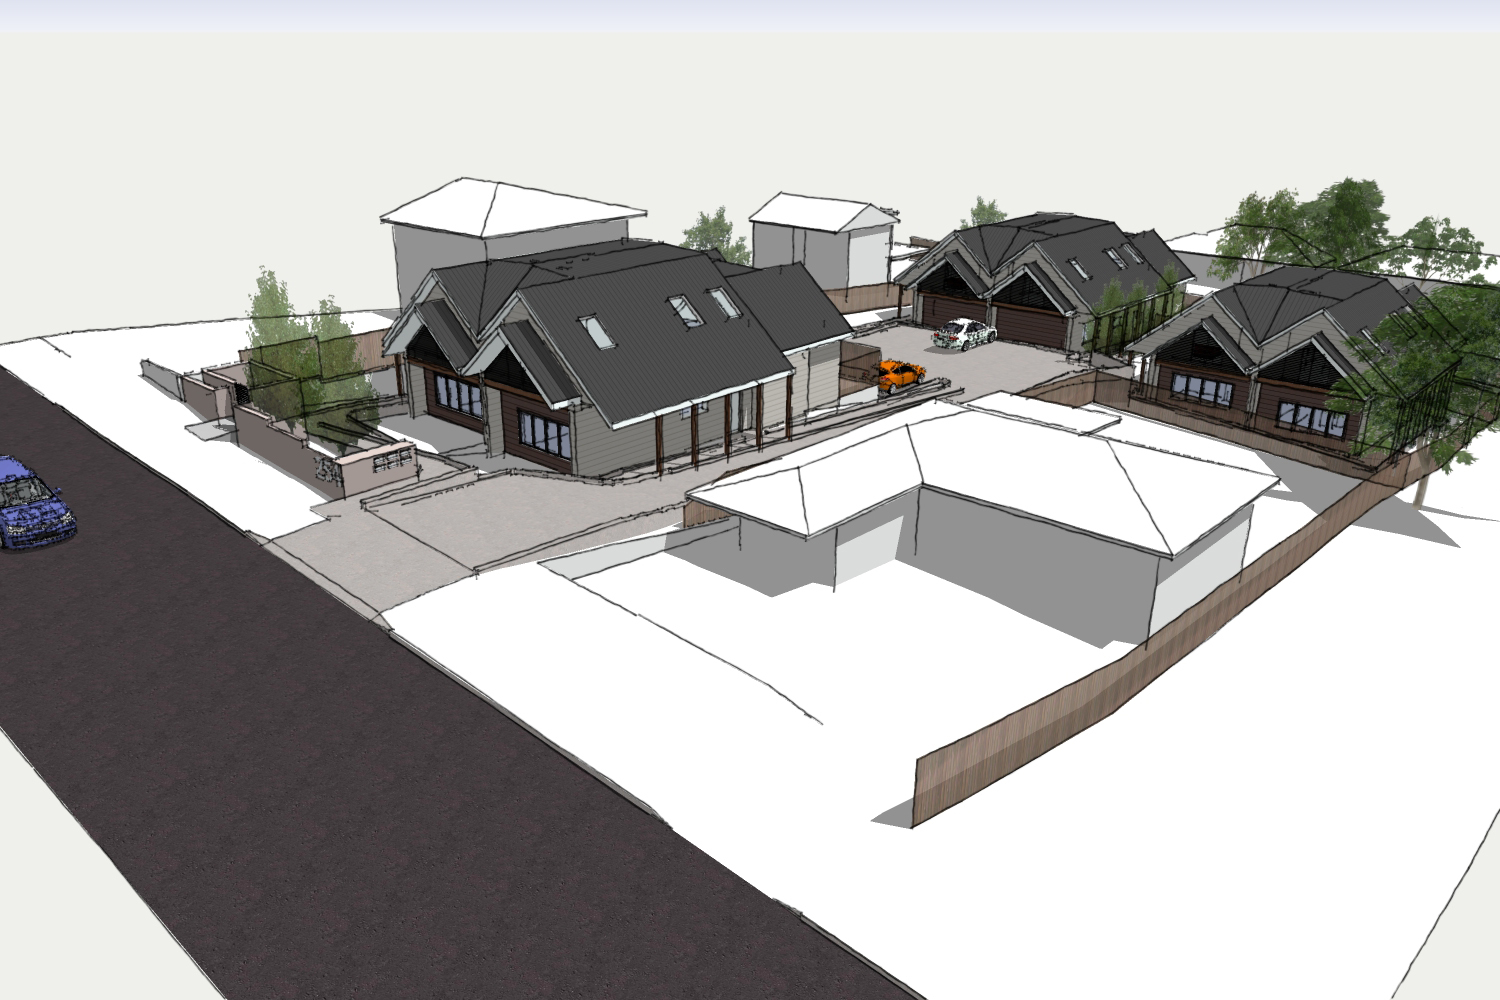 Da approved townhouse development under state for Disability accessible housing